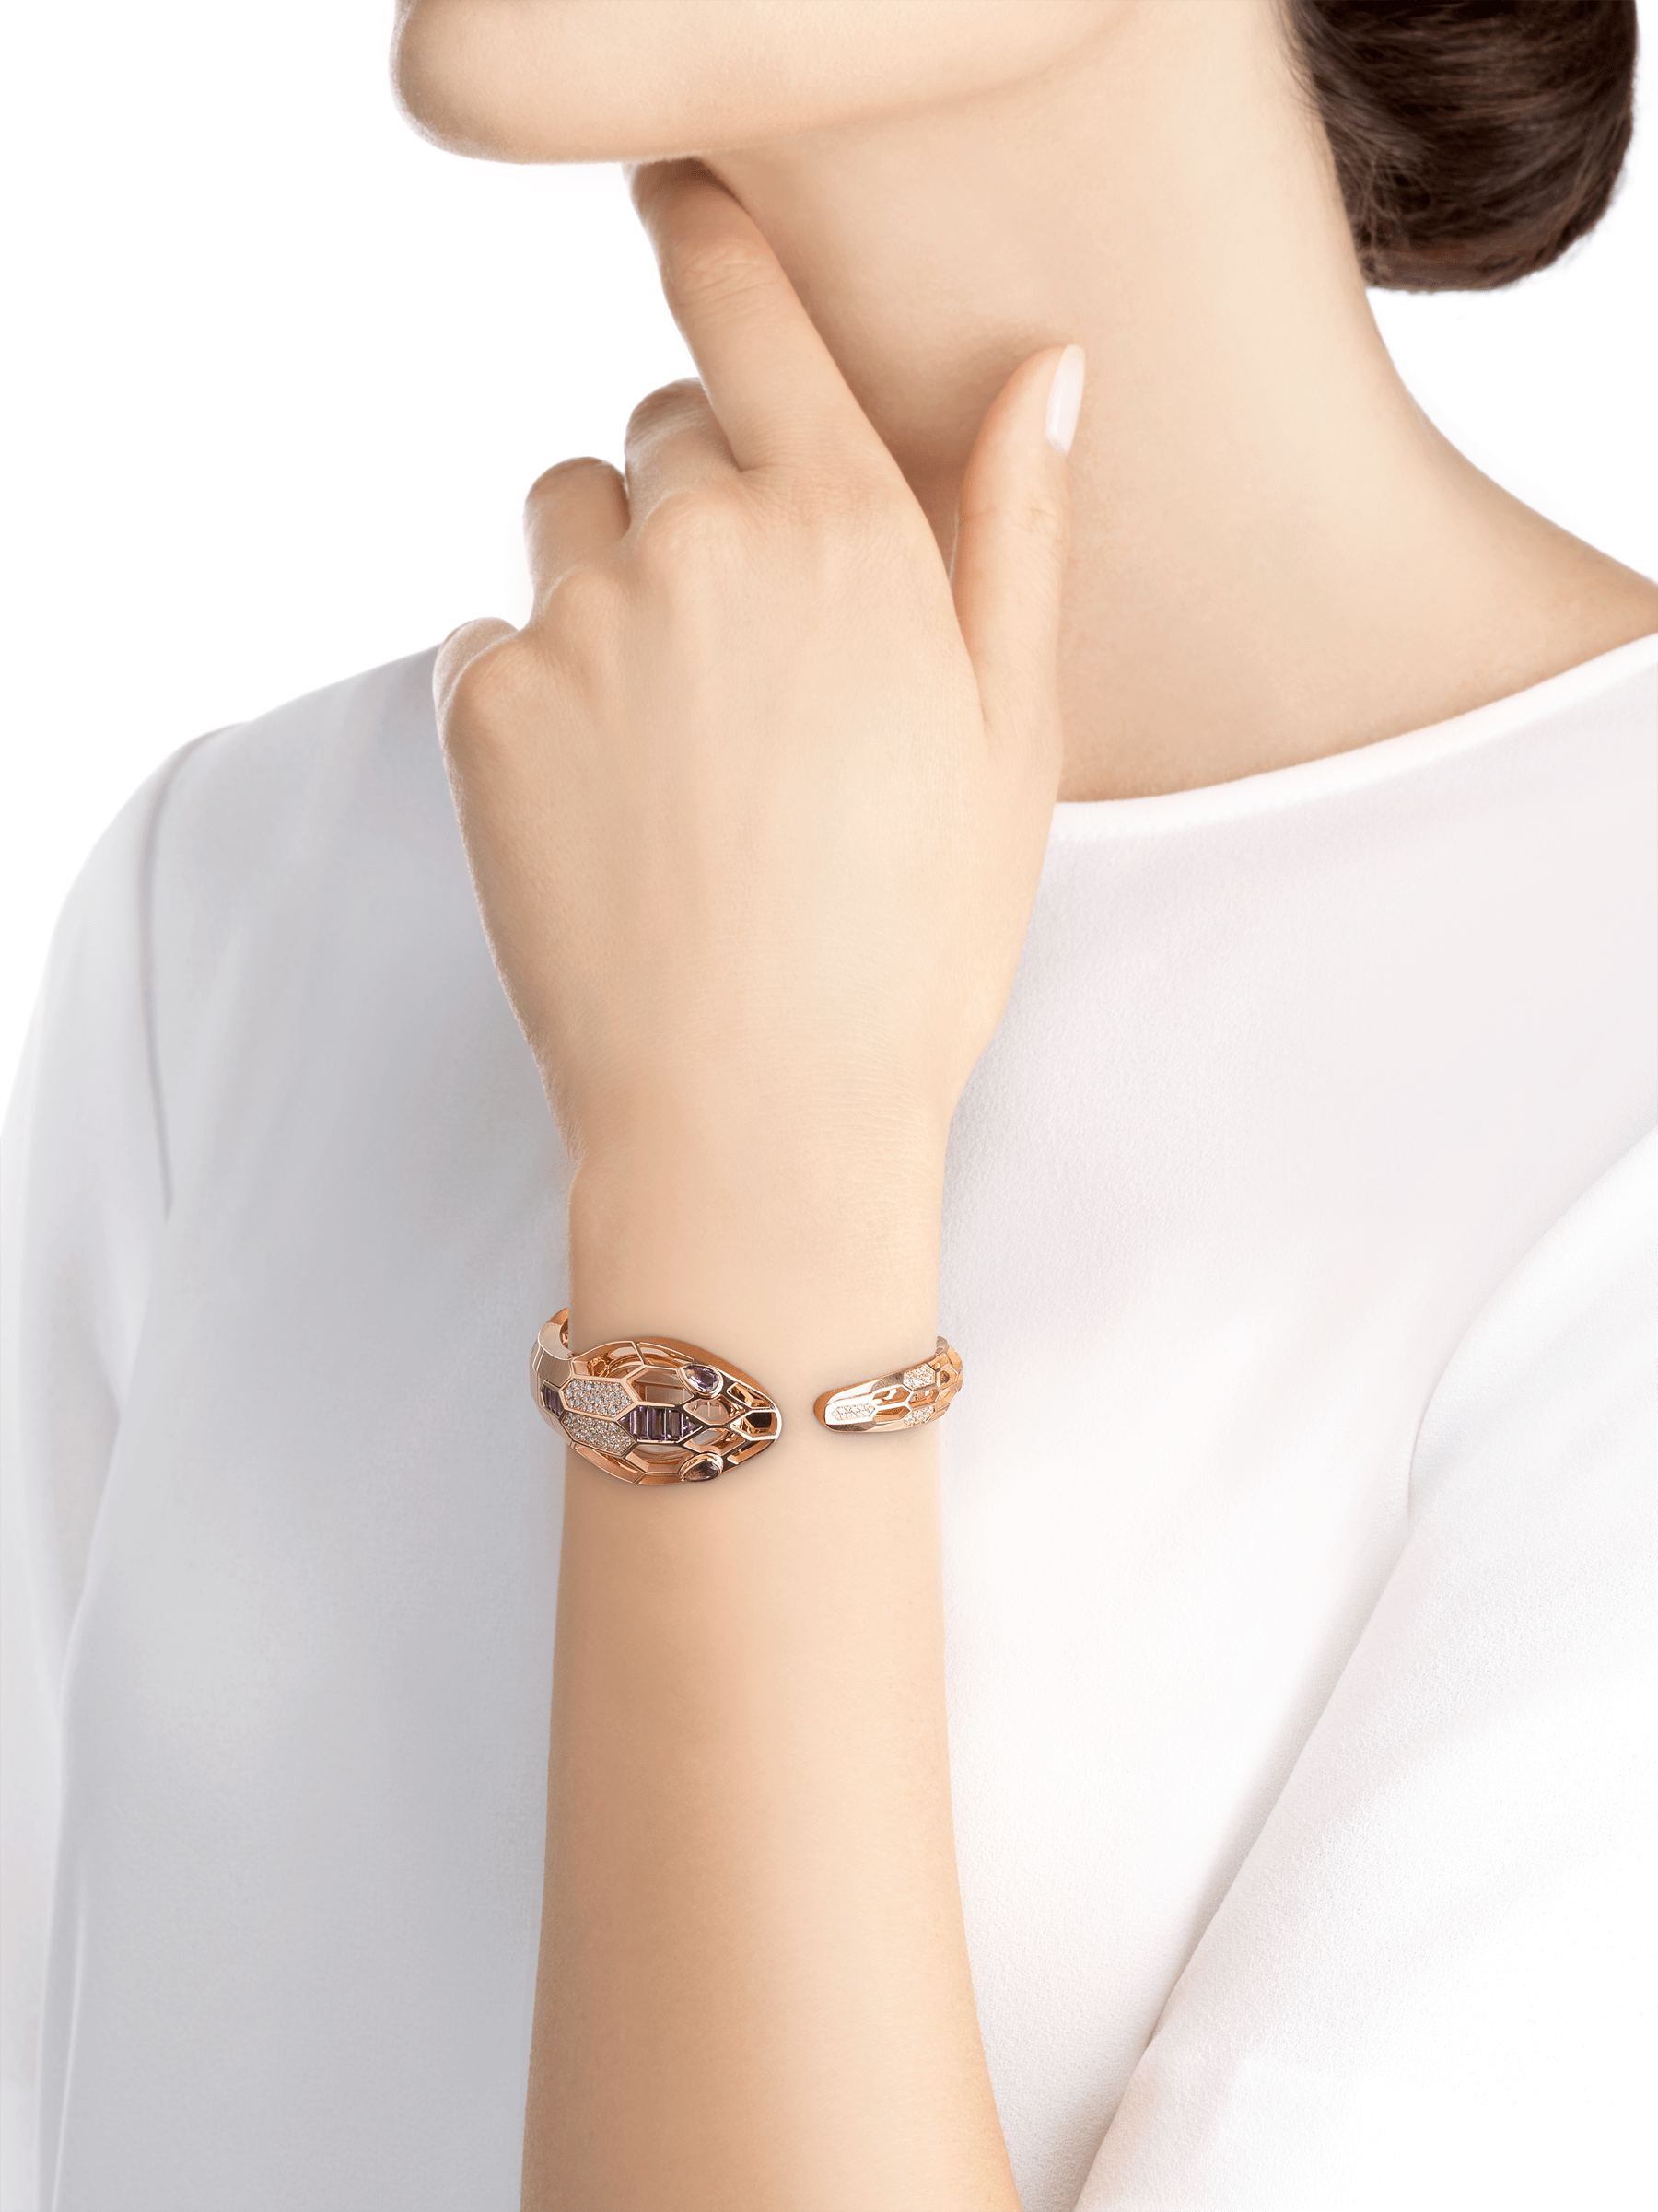 Serpenti Misteriosi Secret Watch in 18 kt rose gold case and bracelet both set with round brilliant-cut diamonds and baguette-cut amethysts, mother-of-pearl dial and pear shaped amethyst eyes. Medium size 103056 image 4